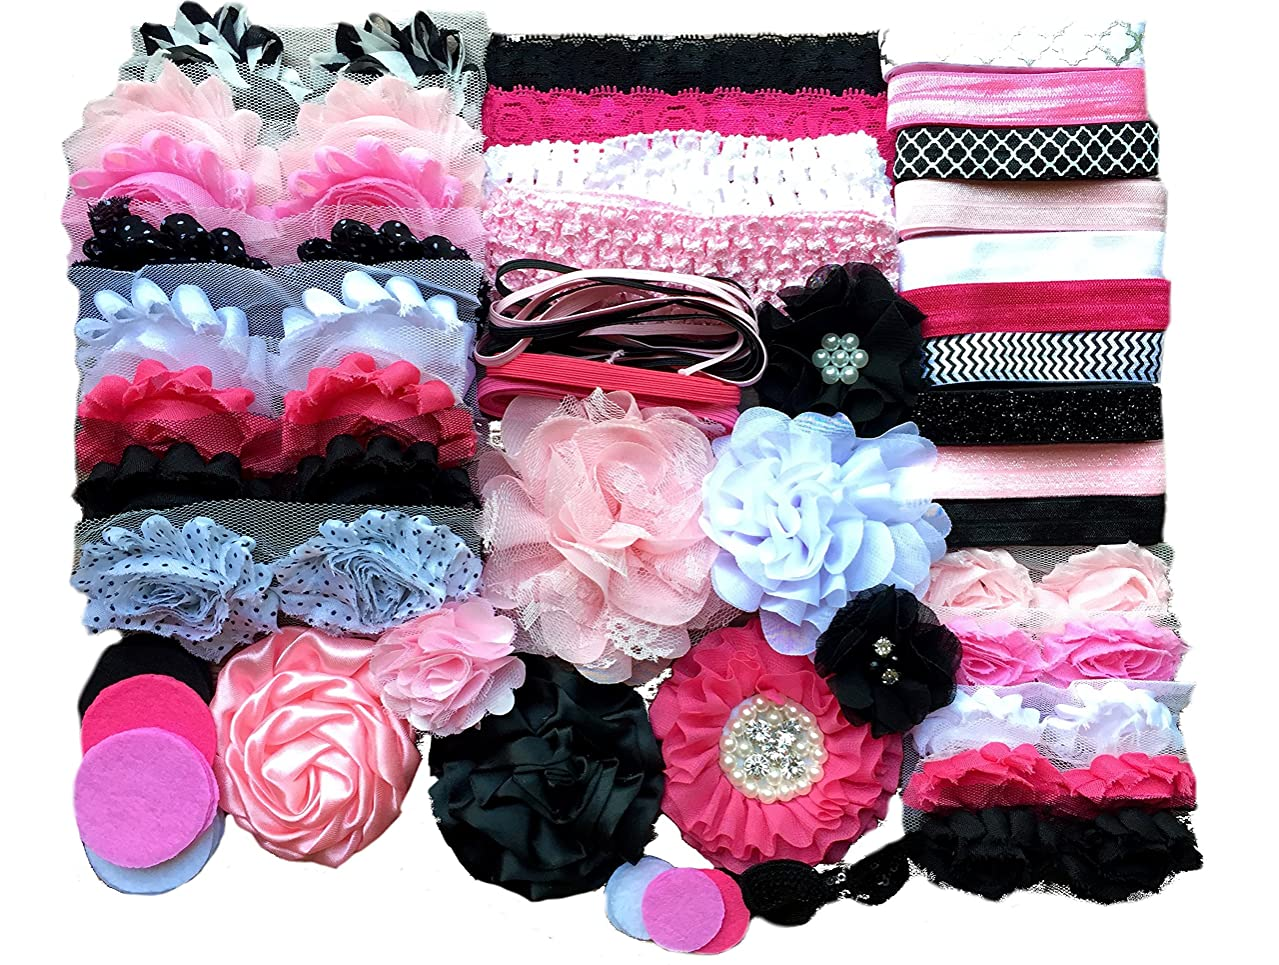 Bowtique Emilee Baby Shower Headband Kit DIY Headband Kit Makes Over 30 Headbands - Pink and Black